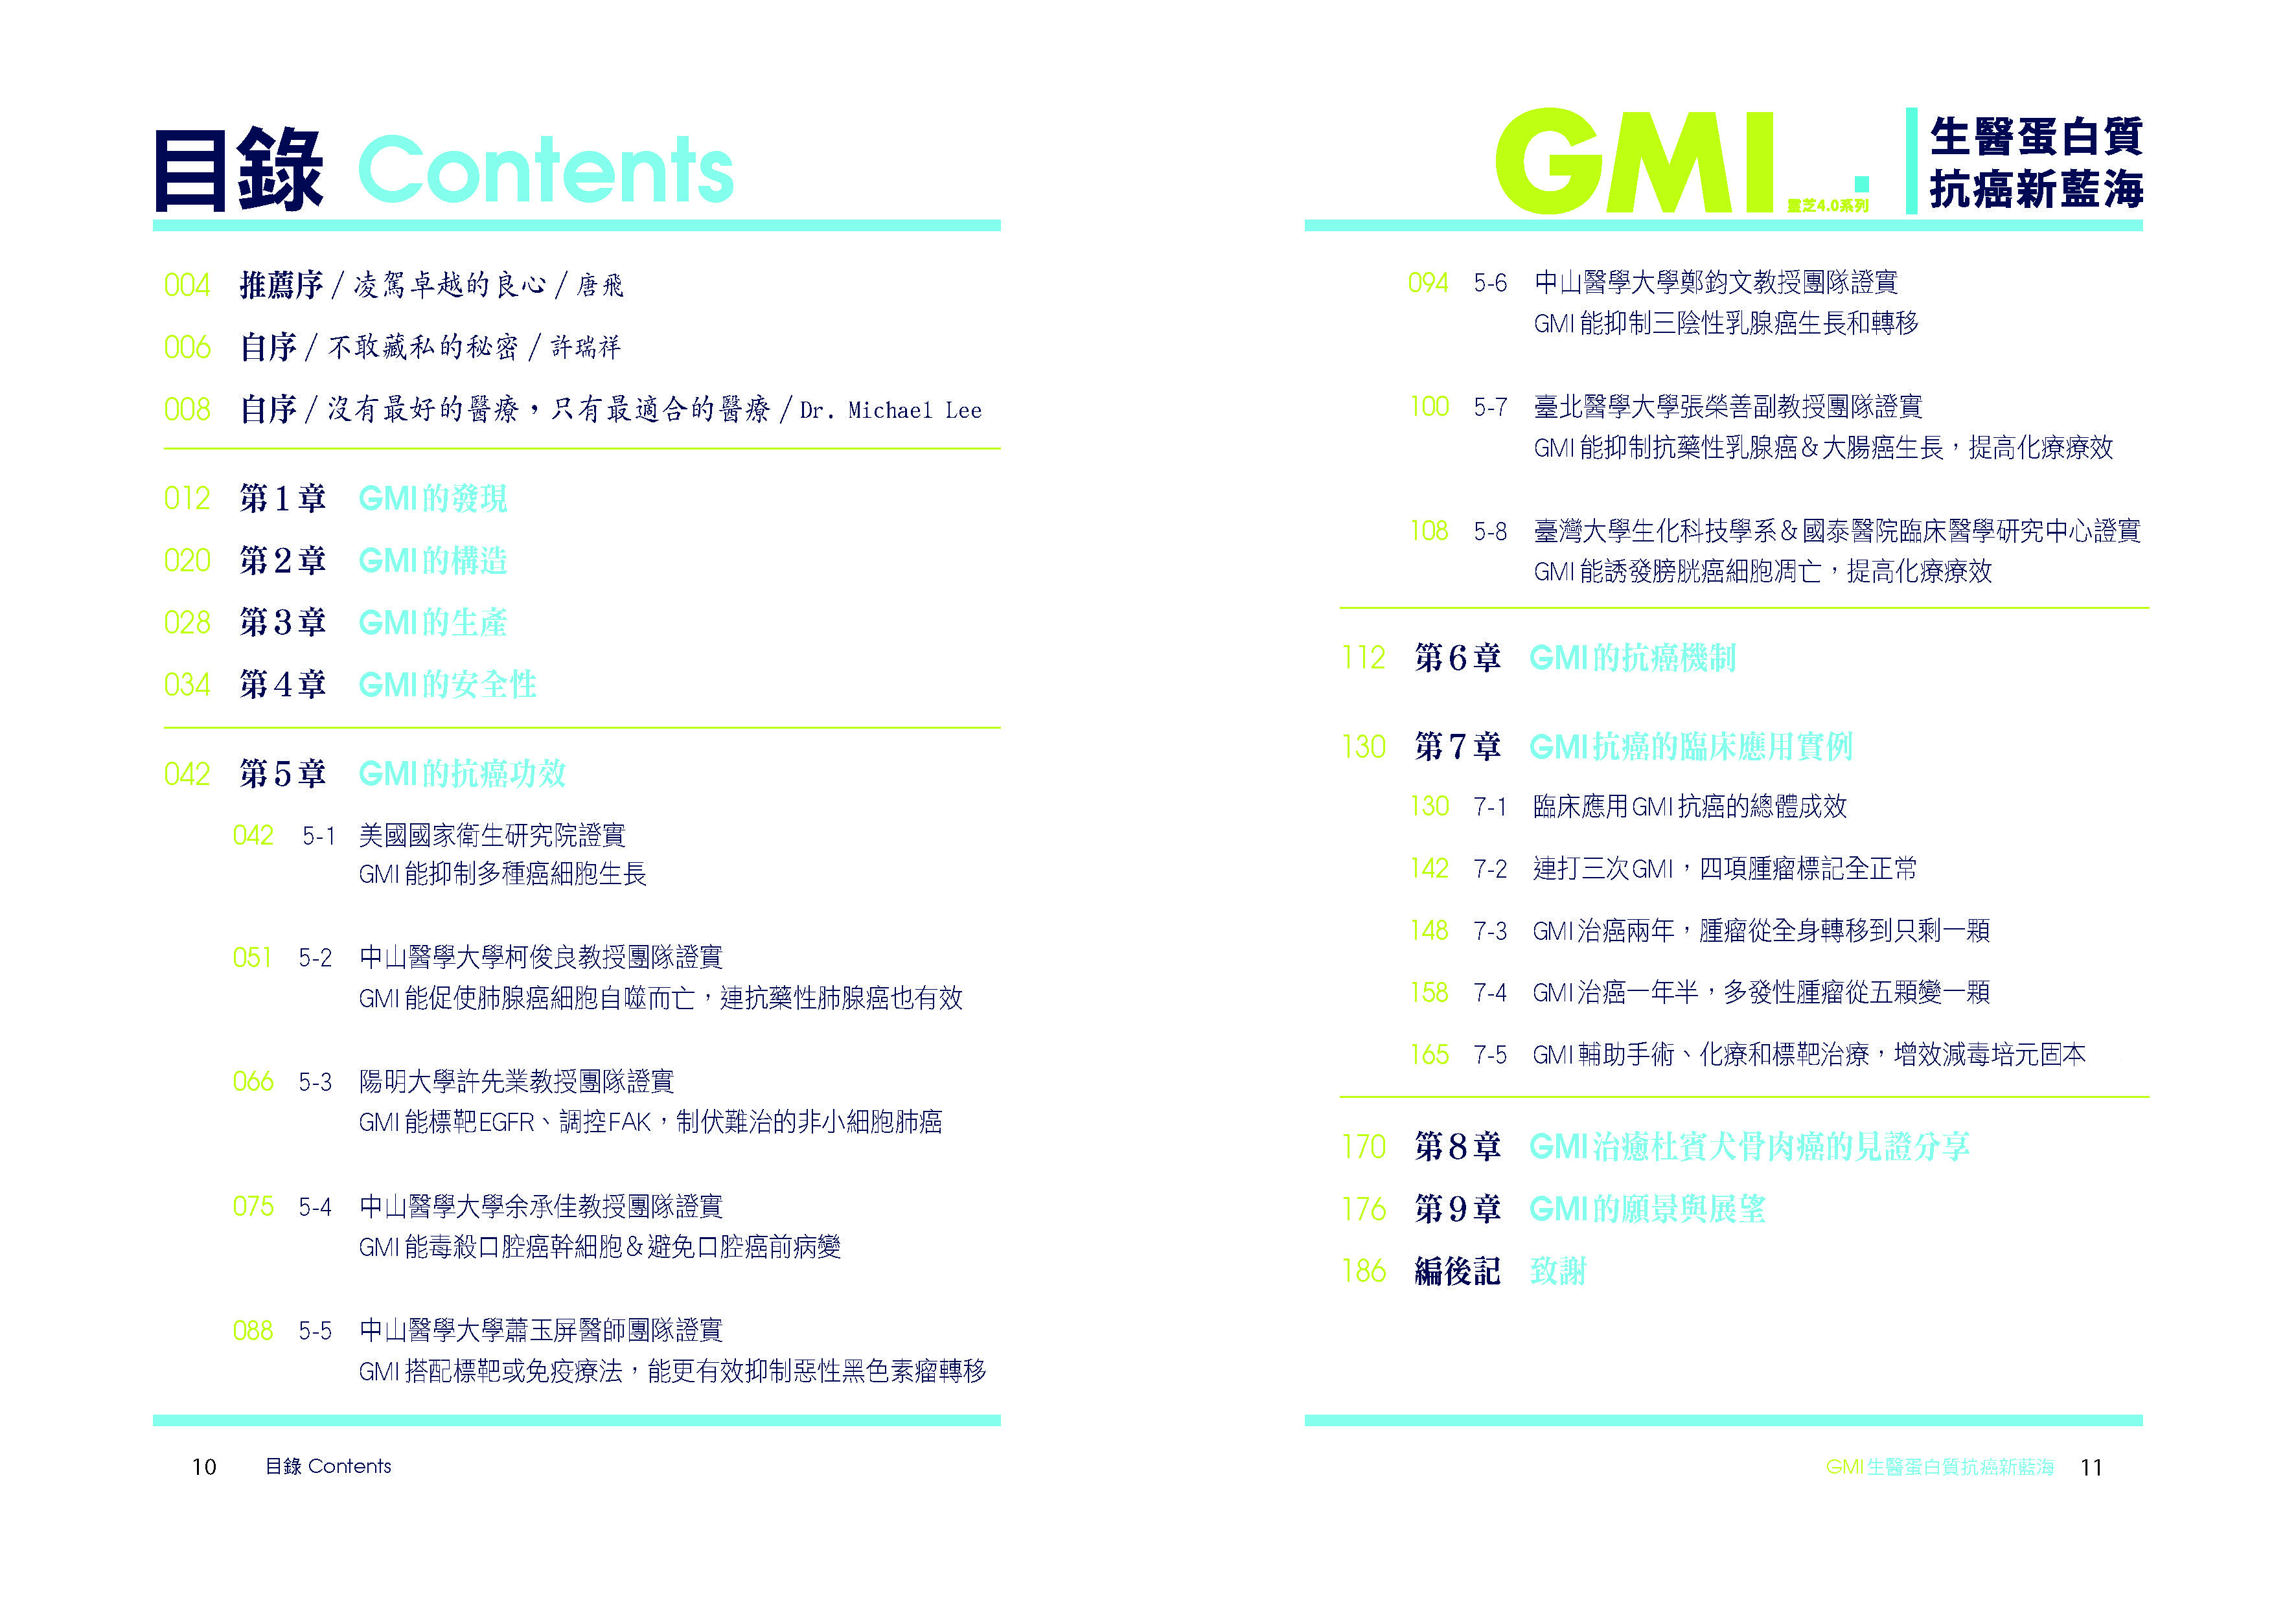 GMI-cancer-contents